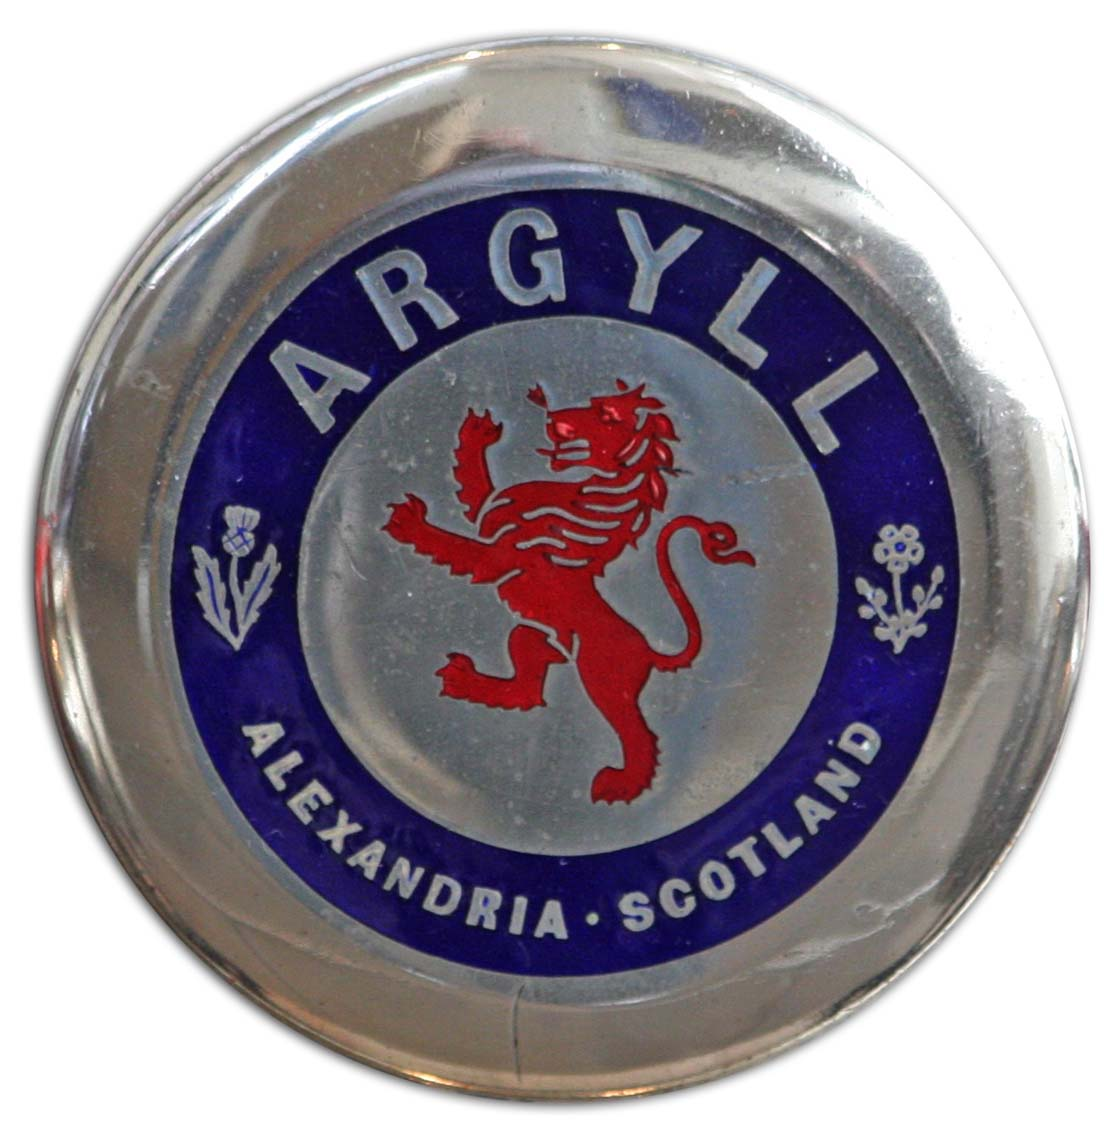 Argyll Motors Ltd. (1914)